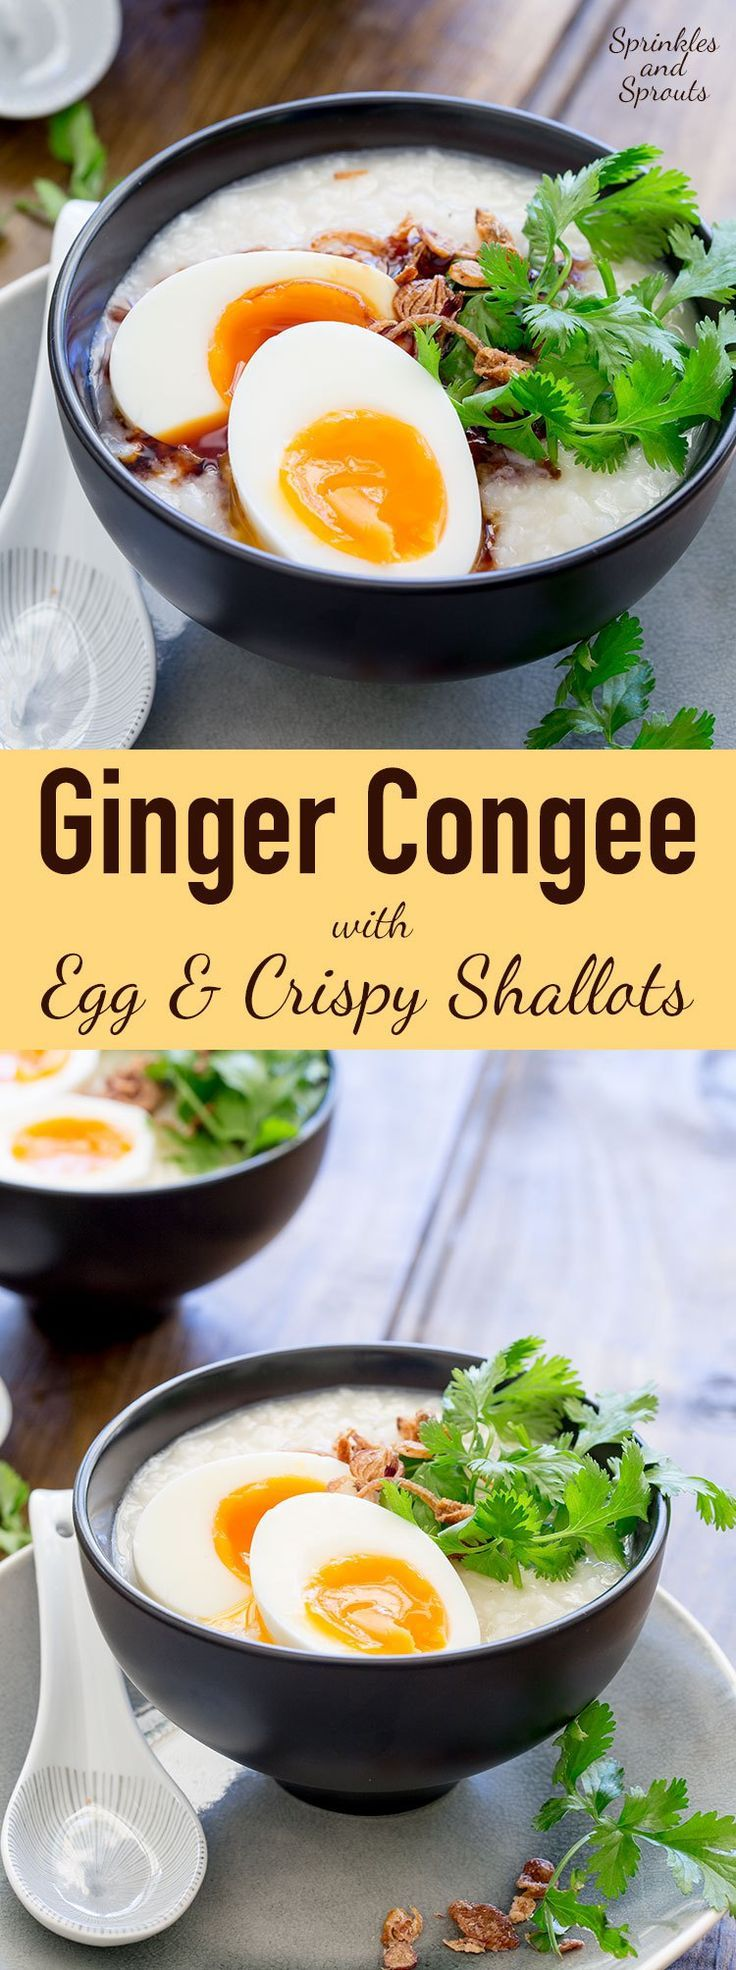 This is comfort food at it's best. Simple and delicious. Congee is a fabulous comforting rice dish!